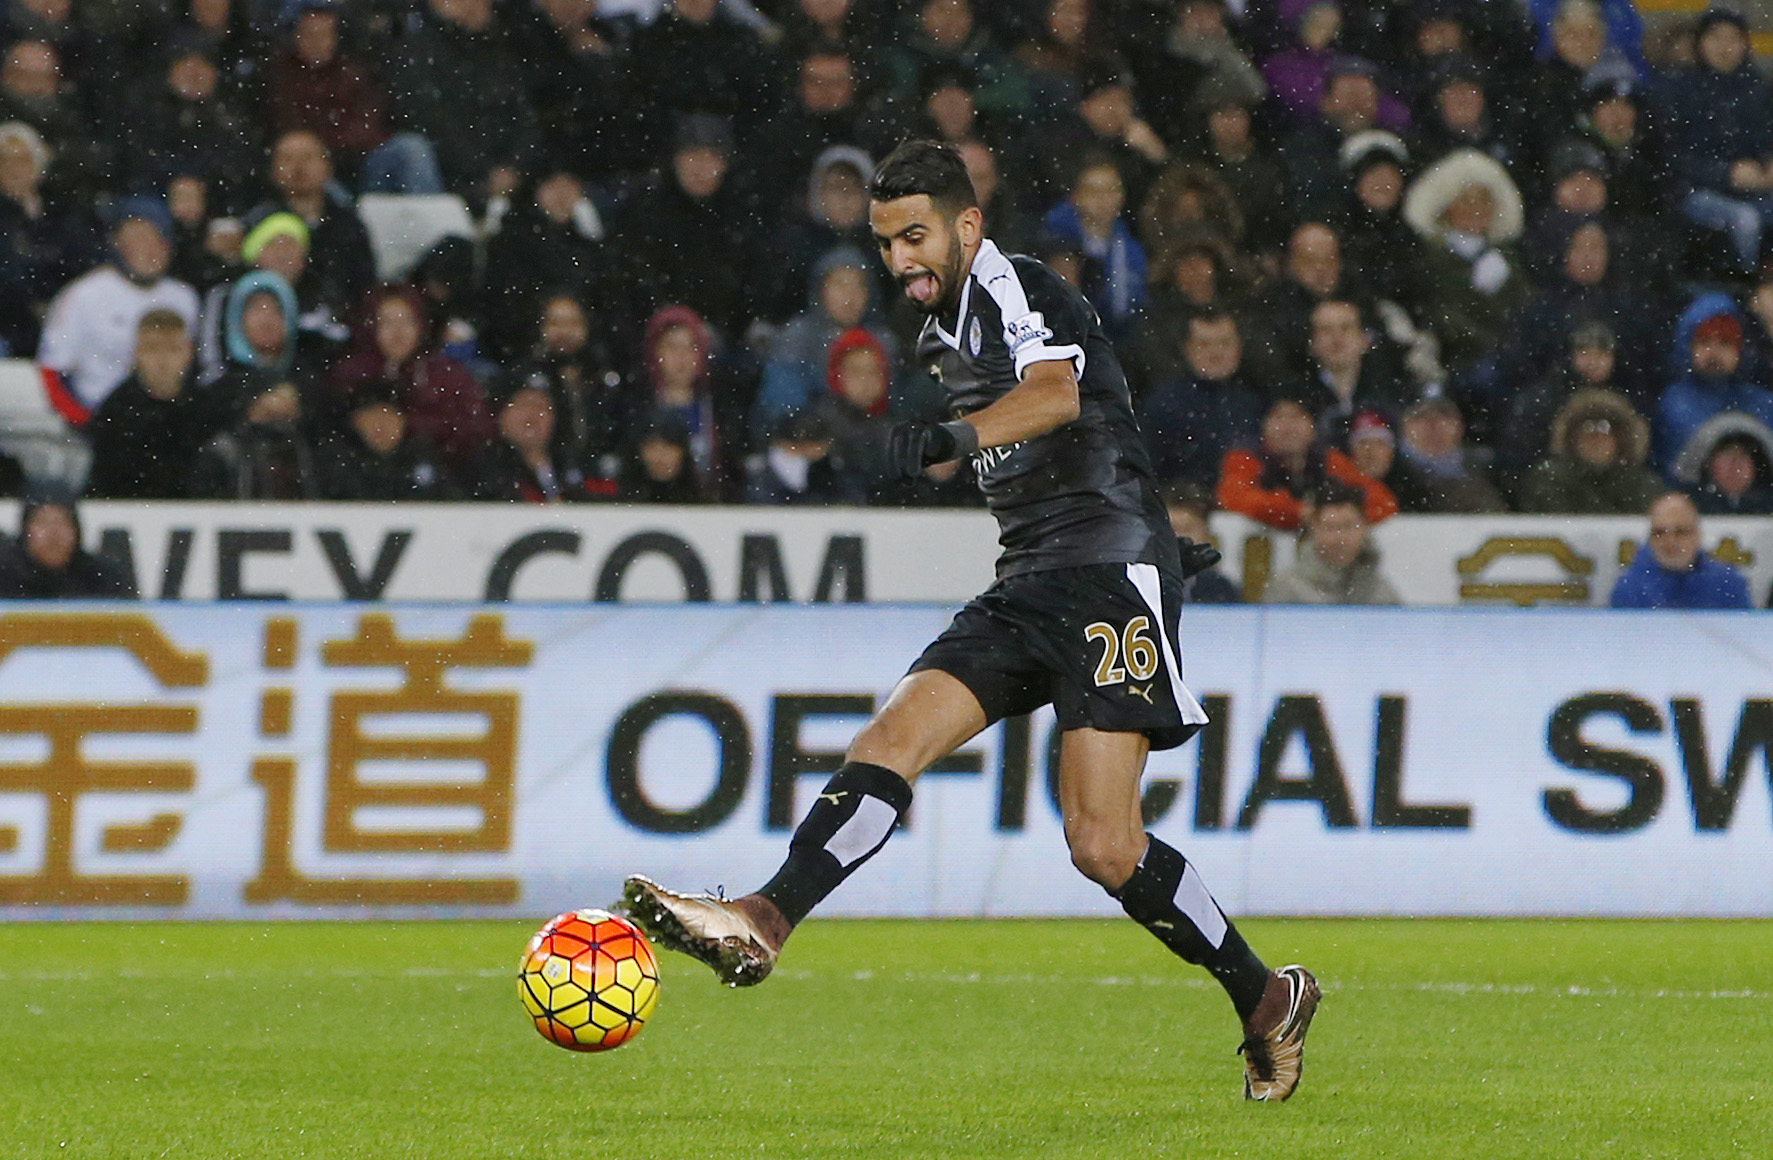 Riyad Mahrez celebrates scoring the first goal for Leicester City during Barclays Premier League game at Liberty Stadium on December 5, 2015. Photo: Reuters